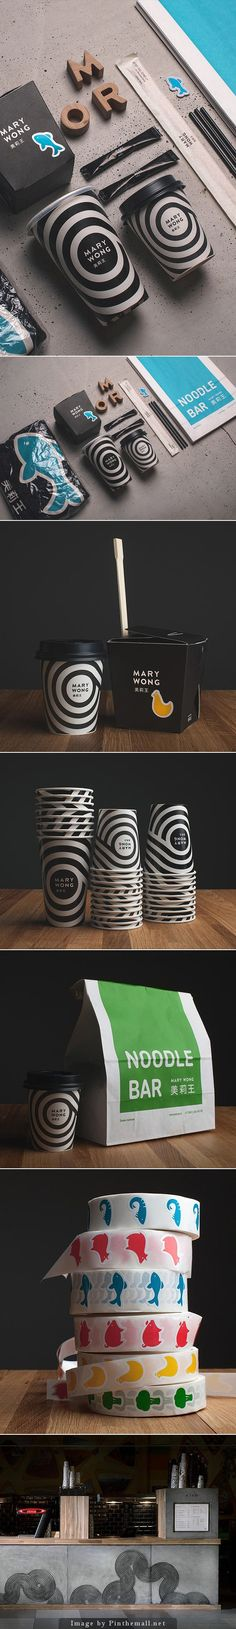 Who wants noodles for lunch packaging curated by Packaging Diva PD created via…